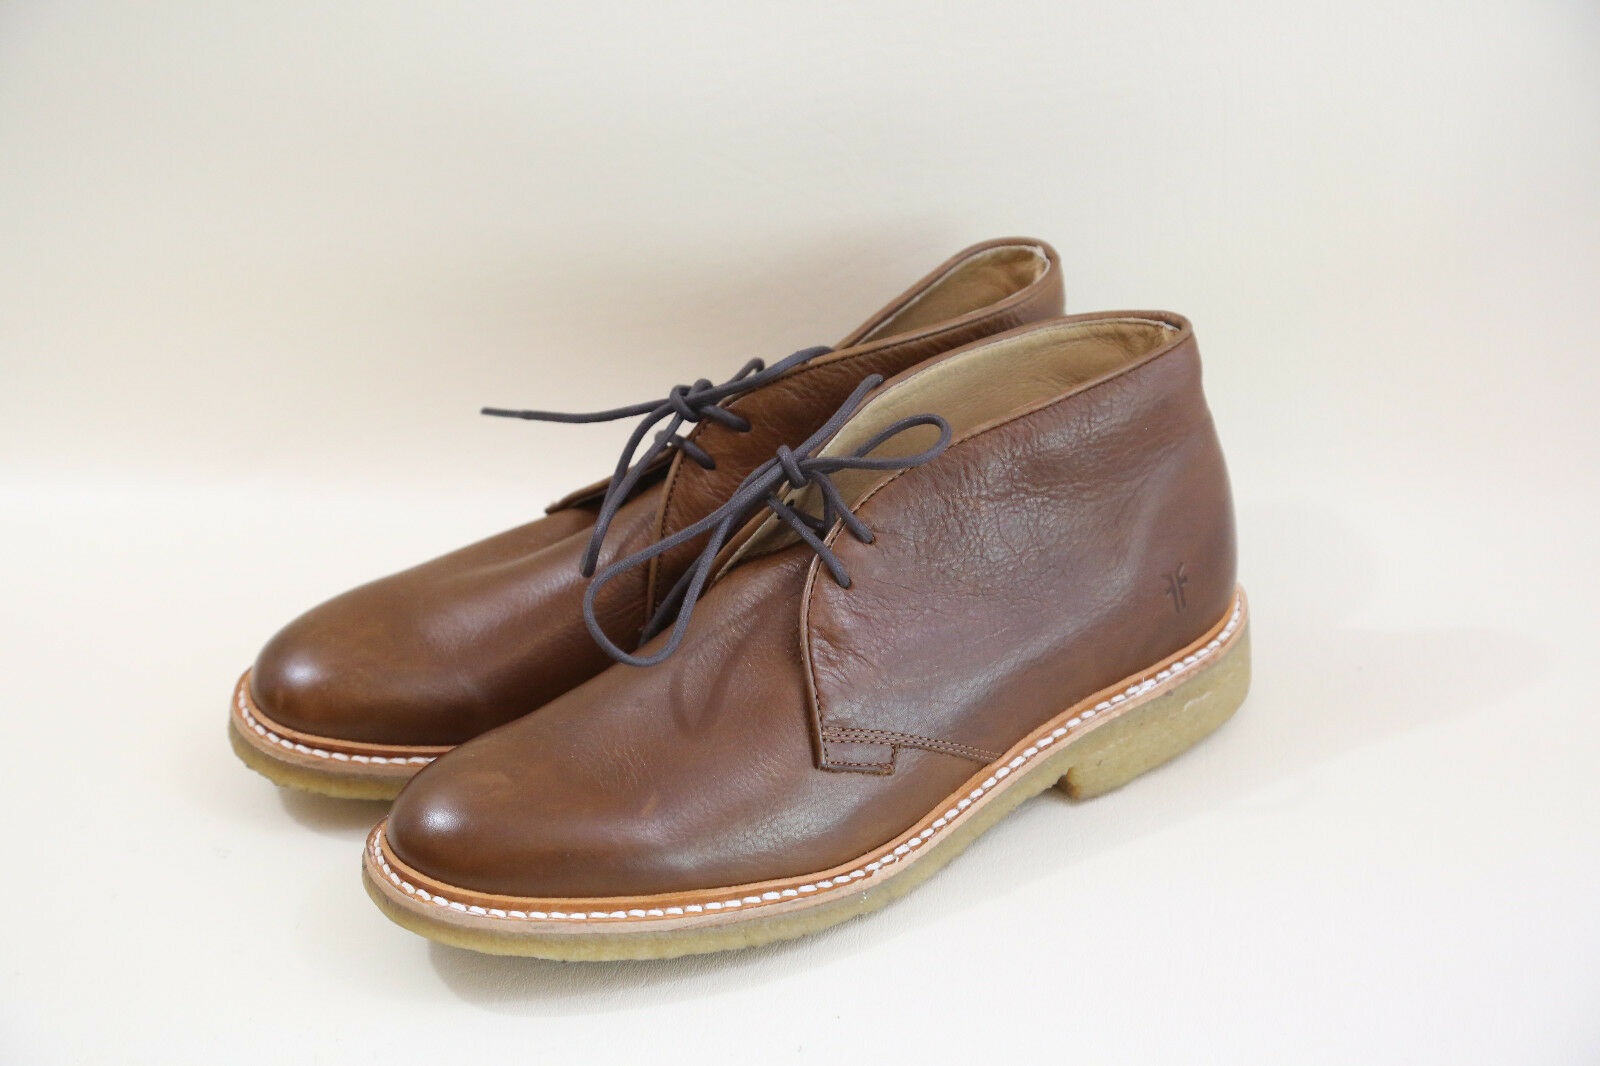 #21 FRYE Brown Chukka Stivali in Size 8  made in Stivali mexico 9b3307